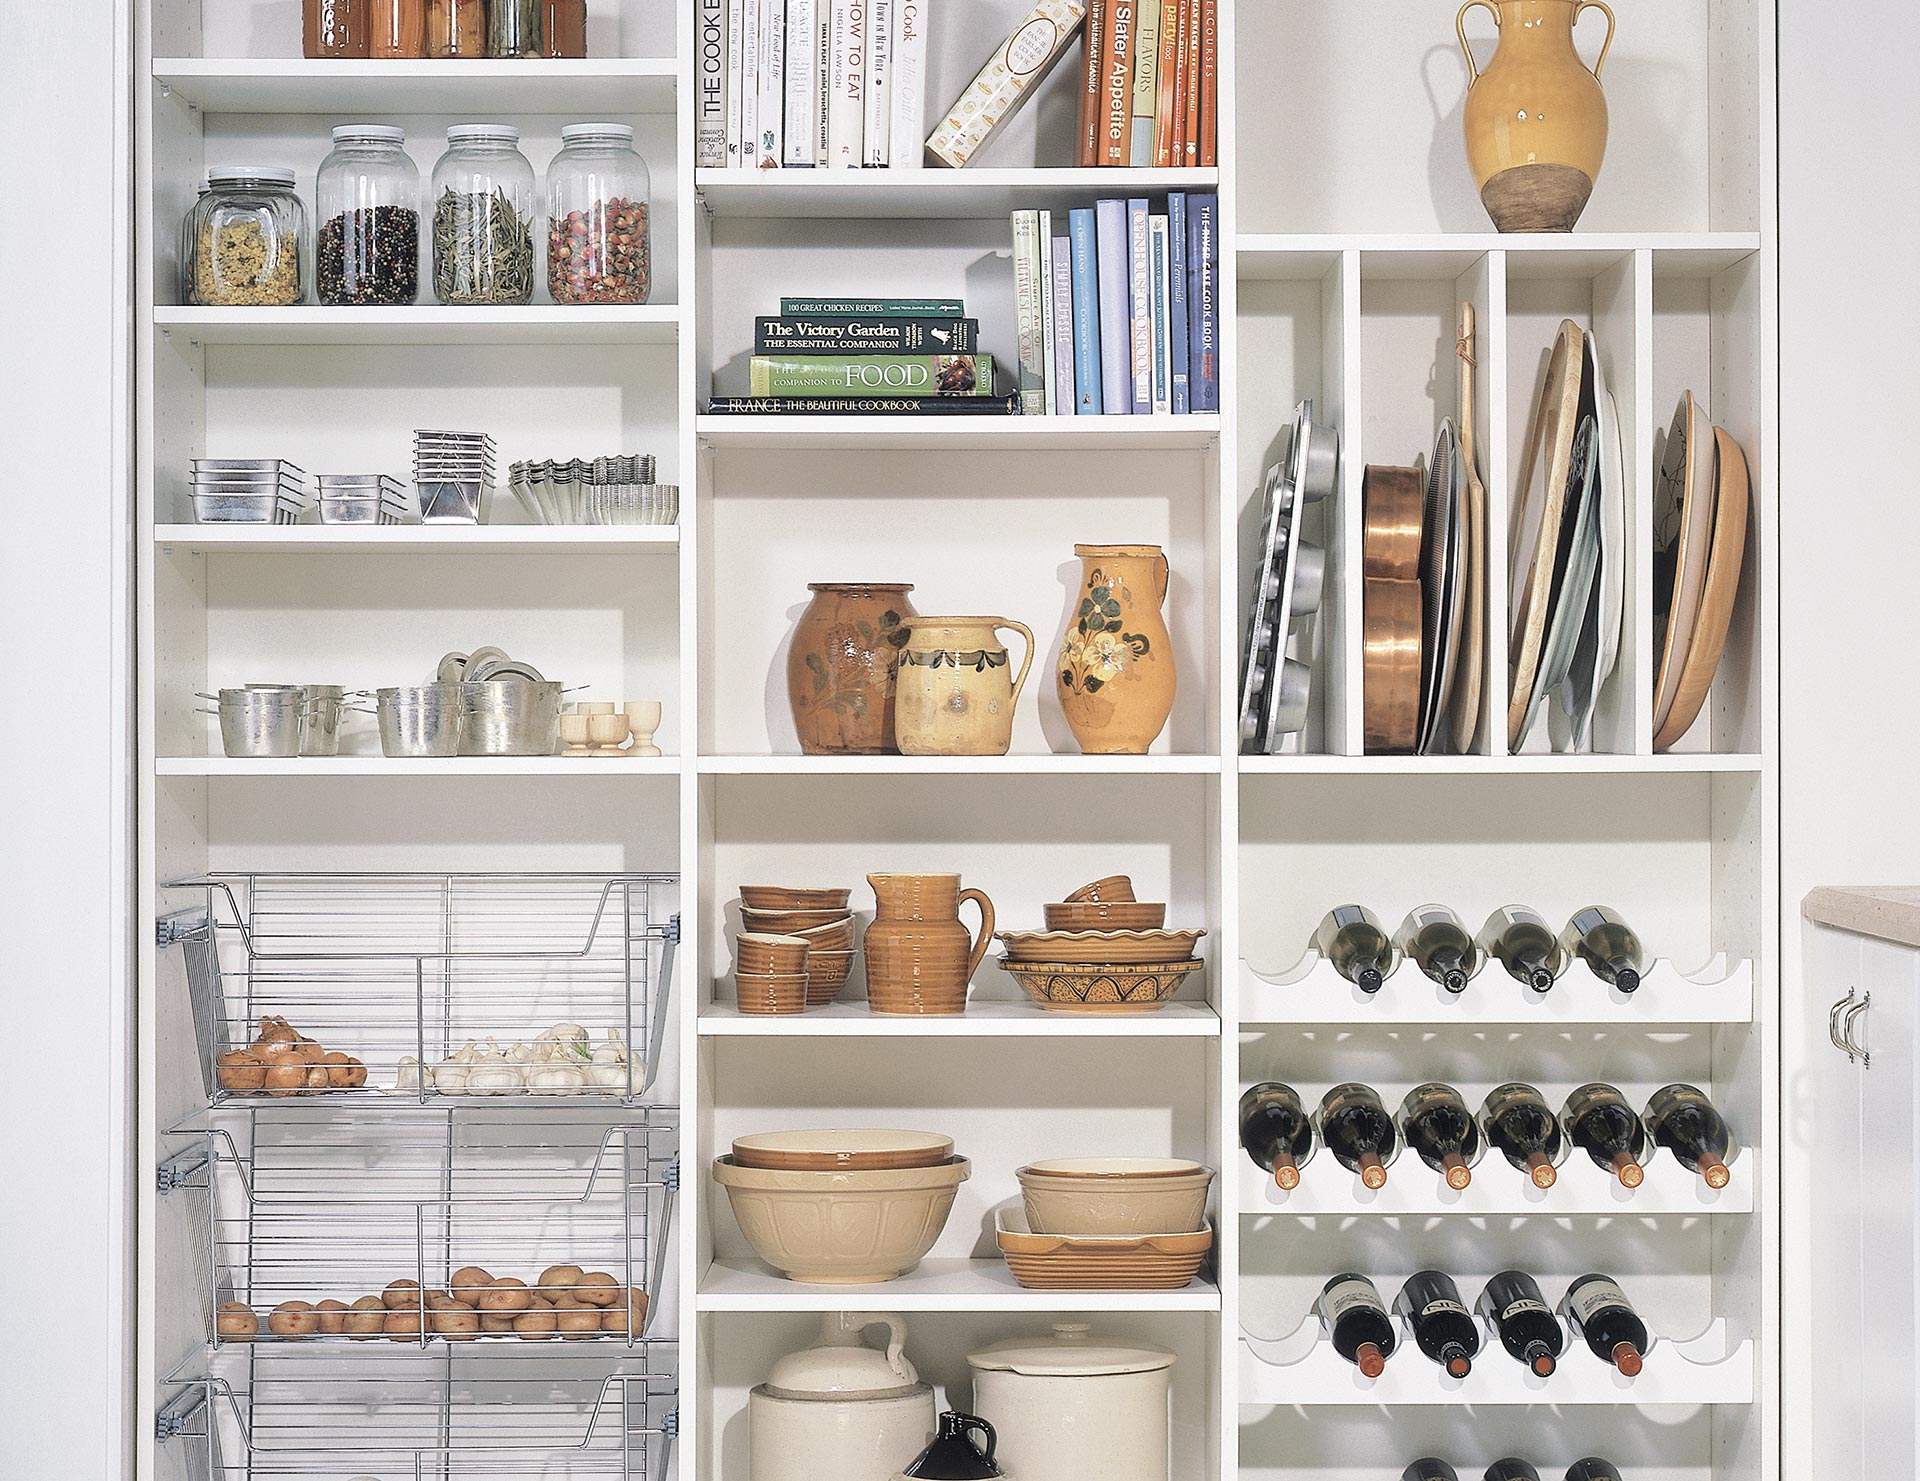 kitchen pantry storage cherry cabinets organization ideas california closets white themed with racks shelving and metal baskets